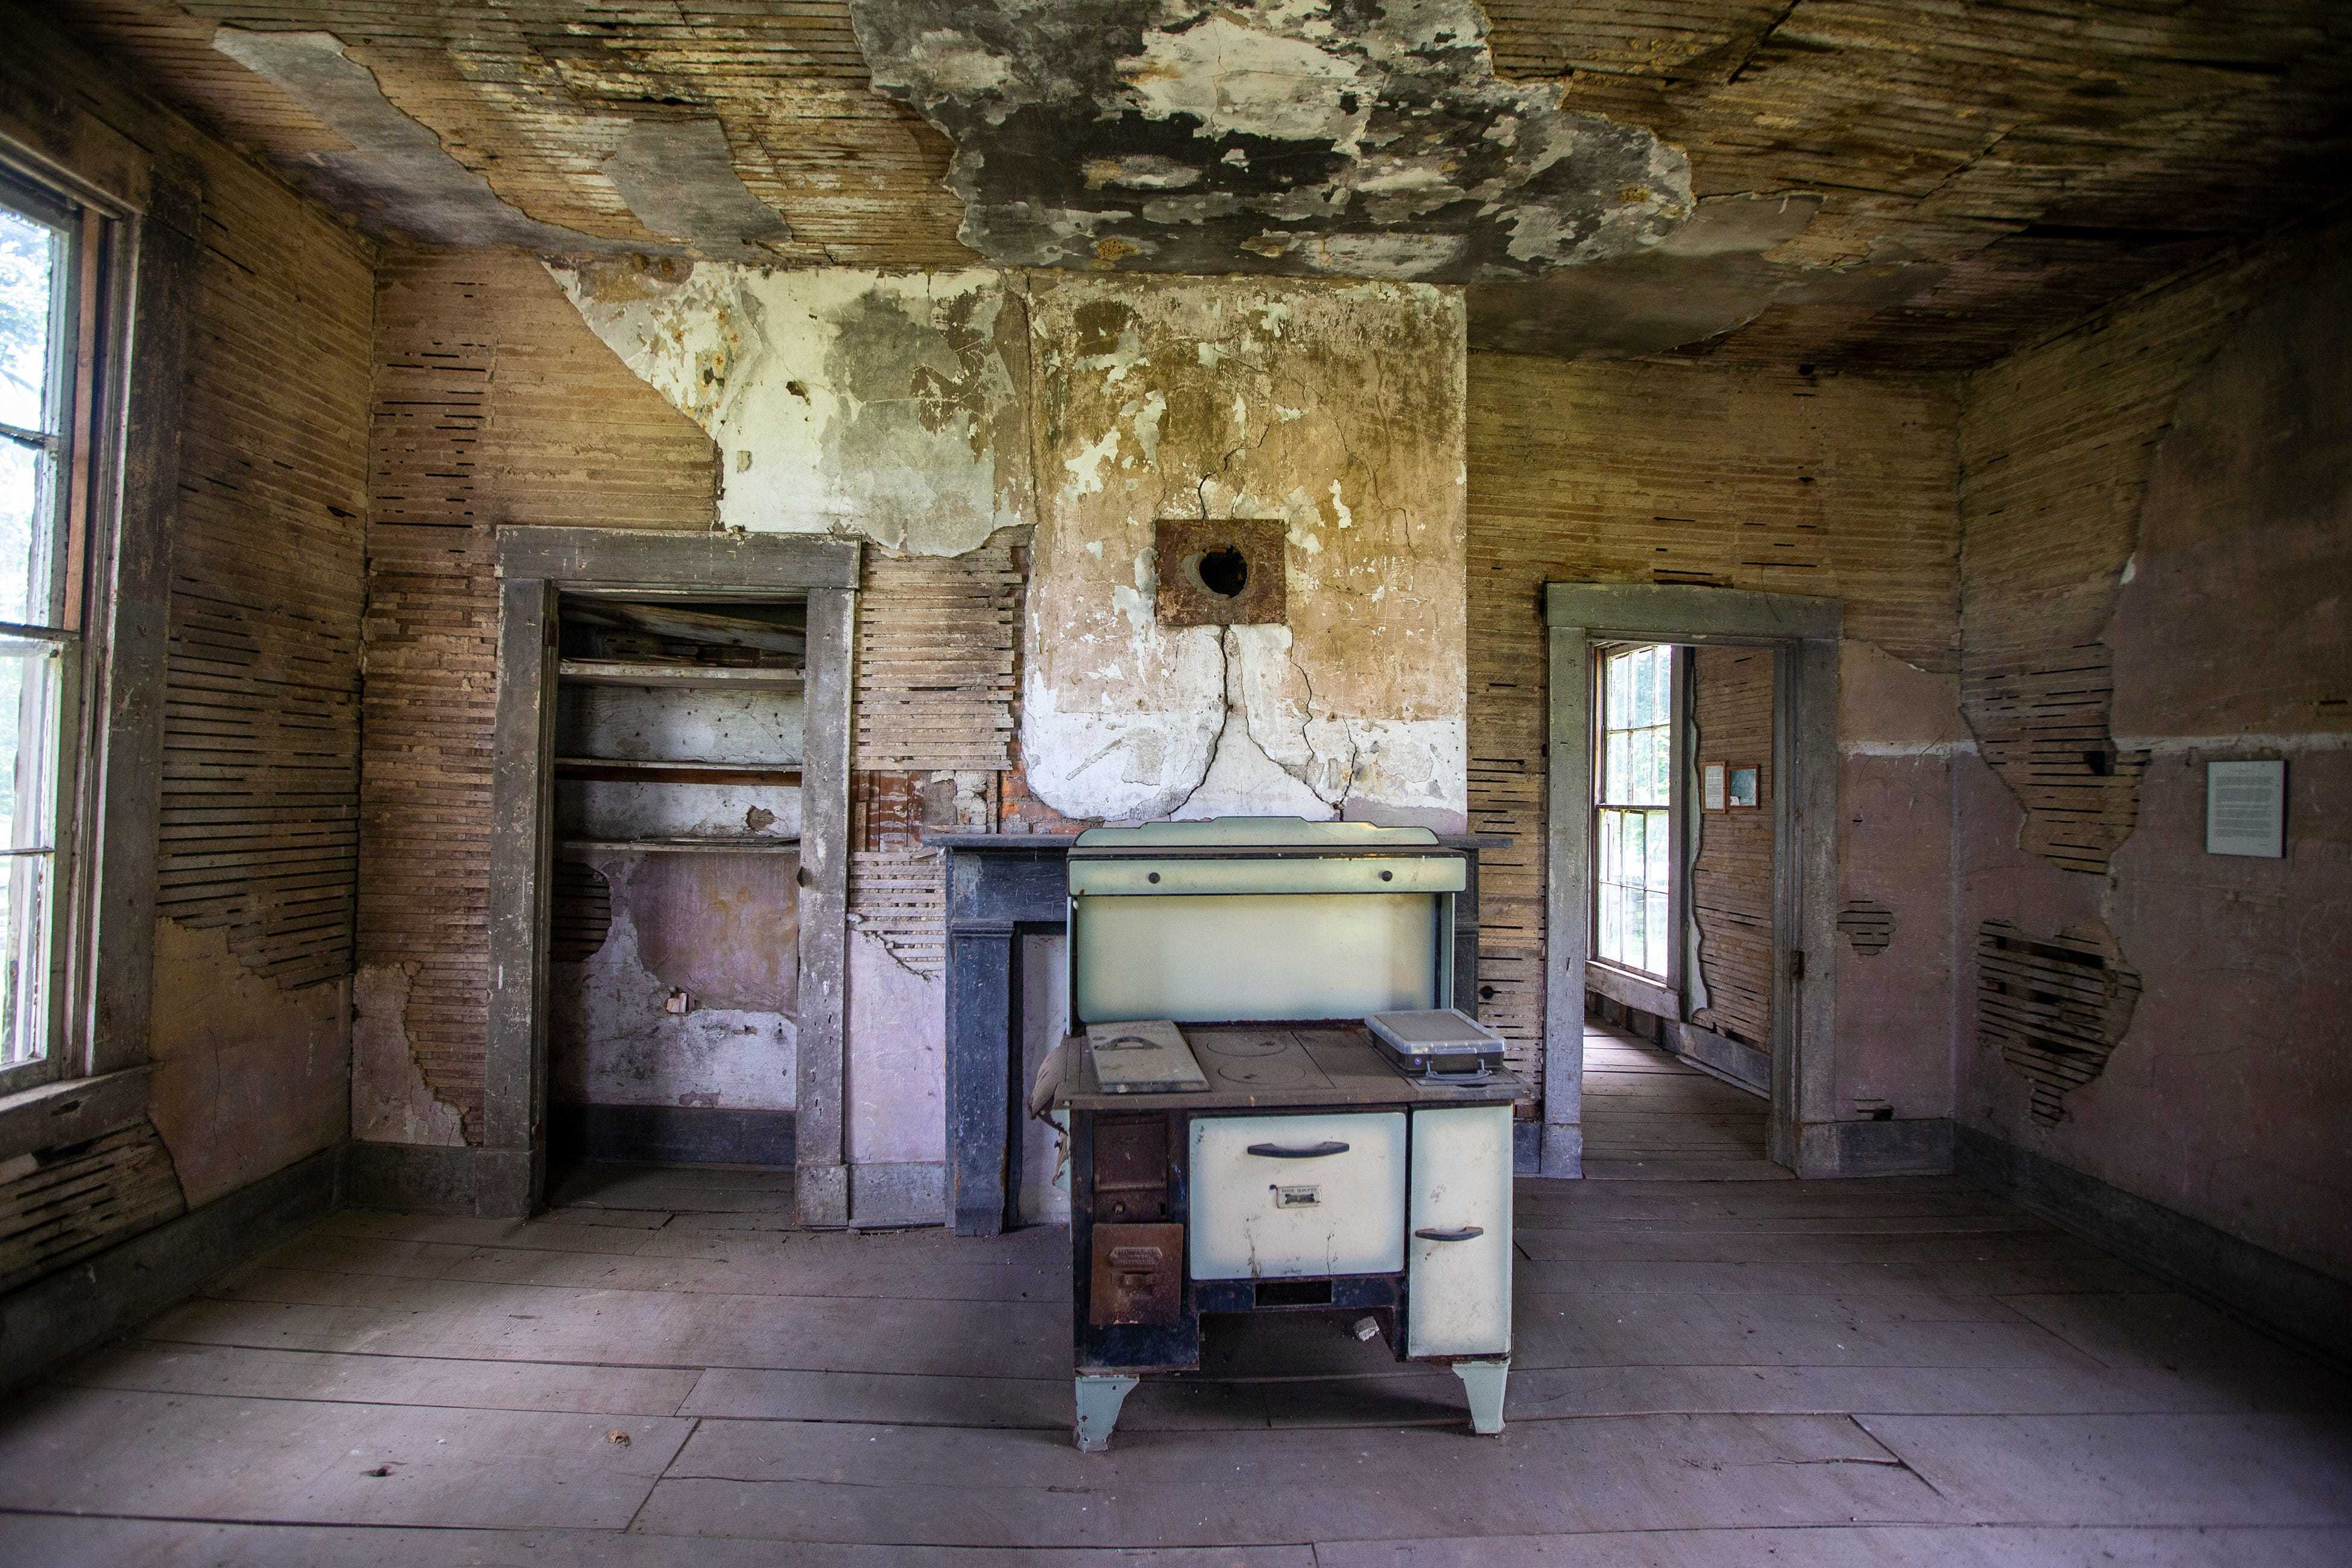 Historians believe Margaret Garner, an enslaved Black woman, worked in this two-room kitchen at the Maplewood Plantation in Boone County, Kentucky.